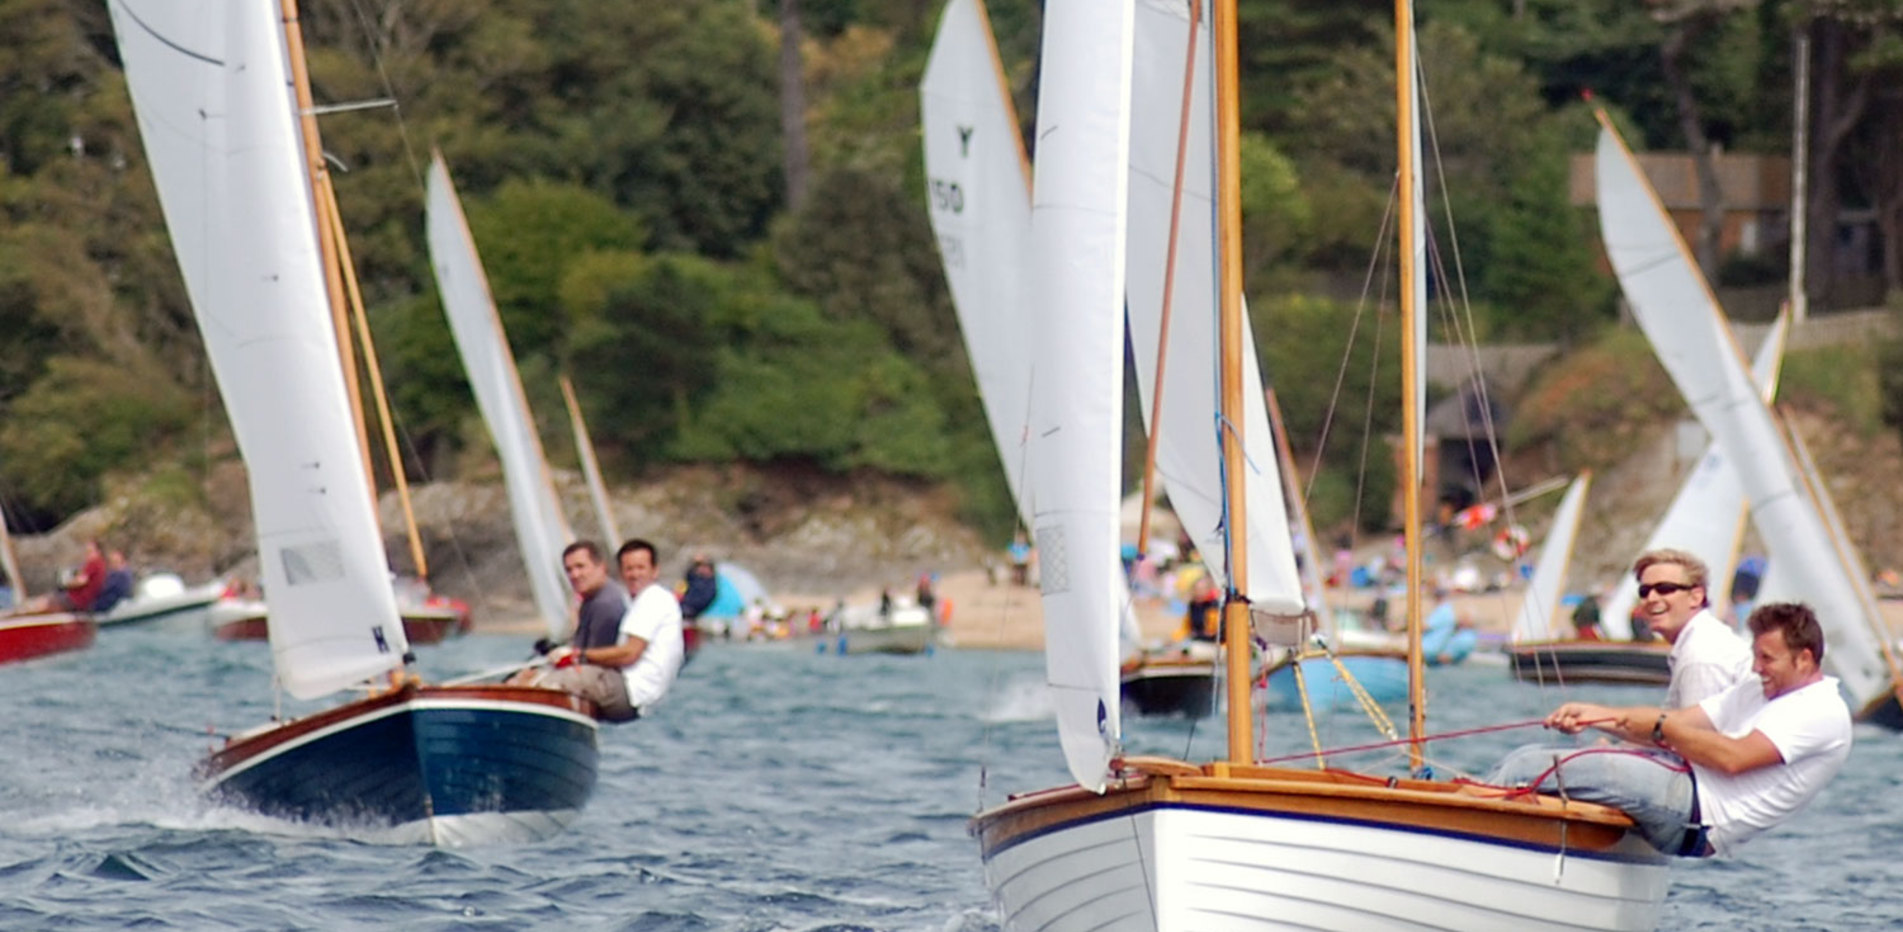 Yawls racing in Salcombe Harbour